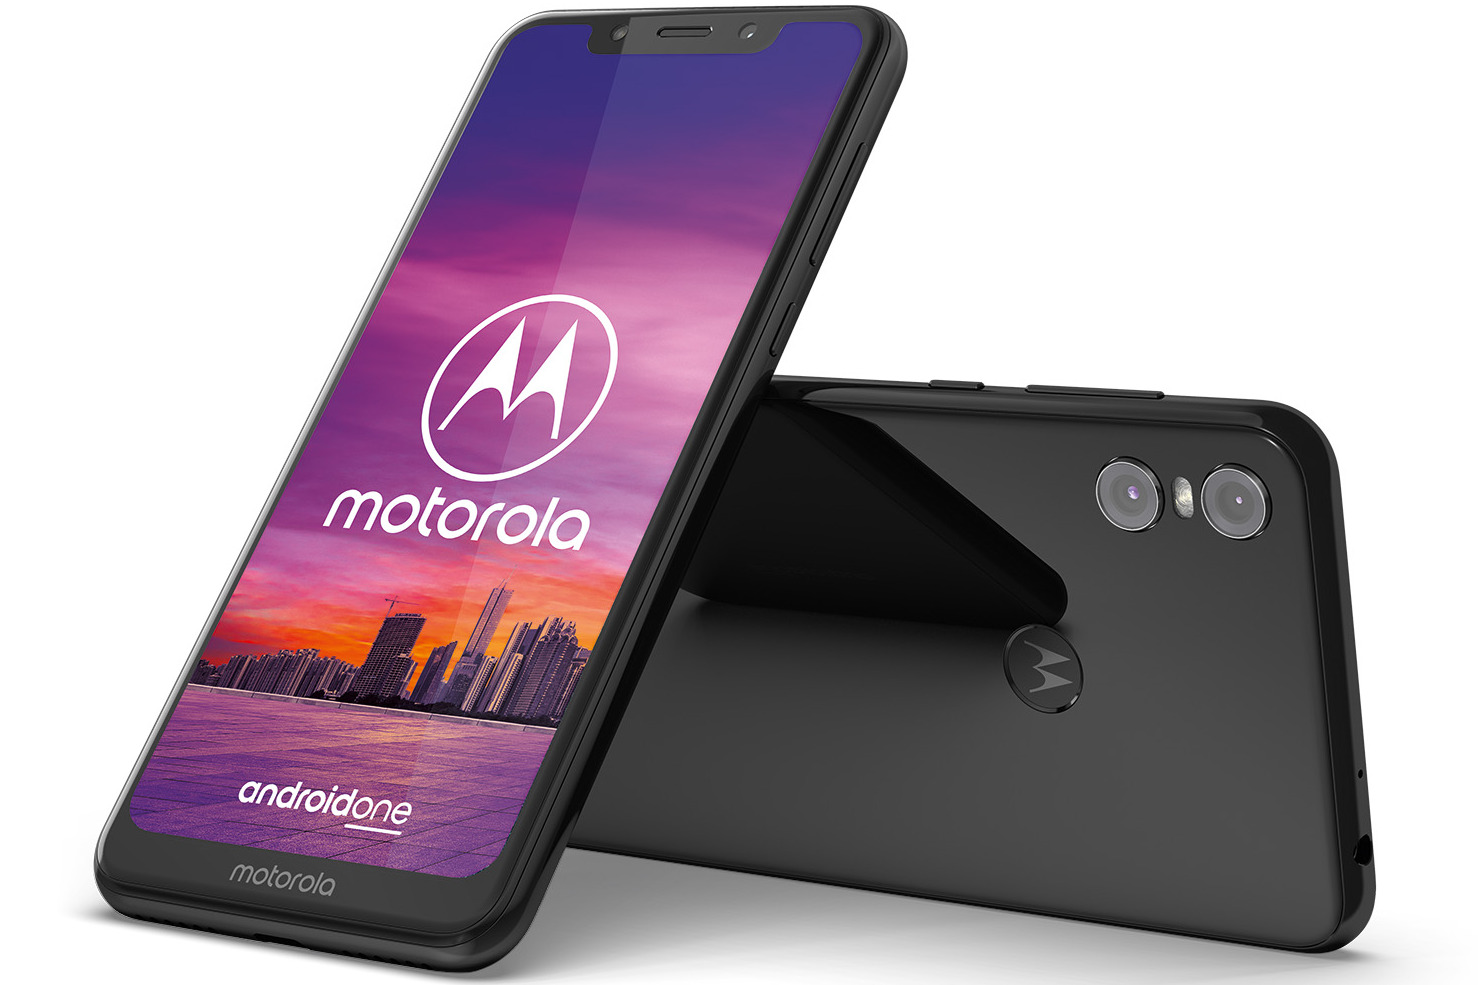 Black Friday Angebot Motorola One Als Pre Black Friday Angebot Für 250 Euro Bei Saturn